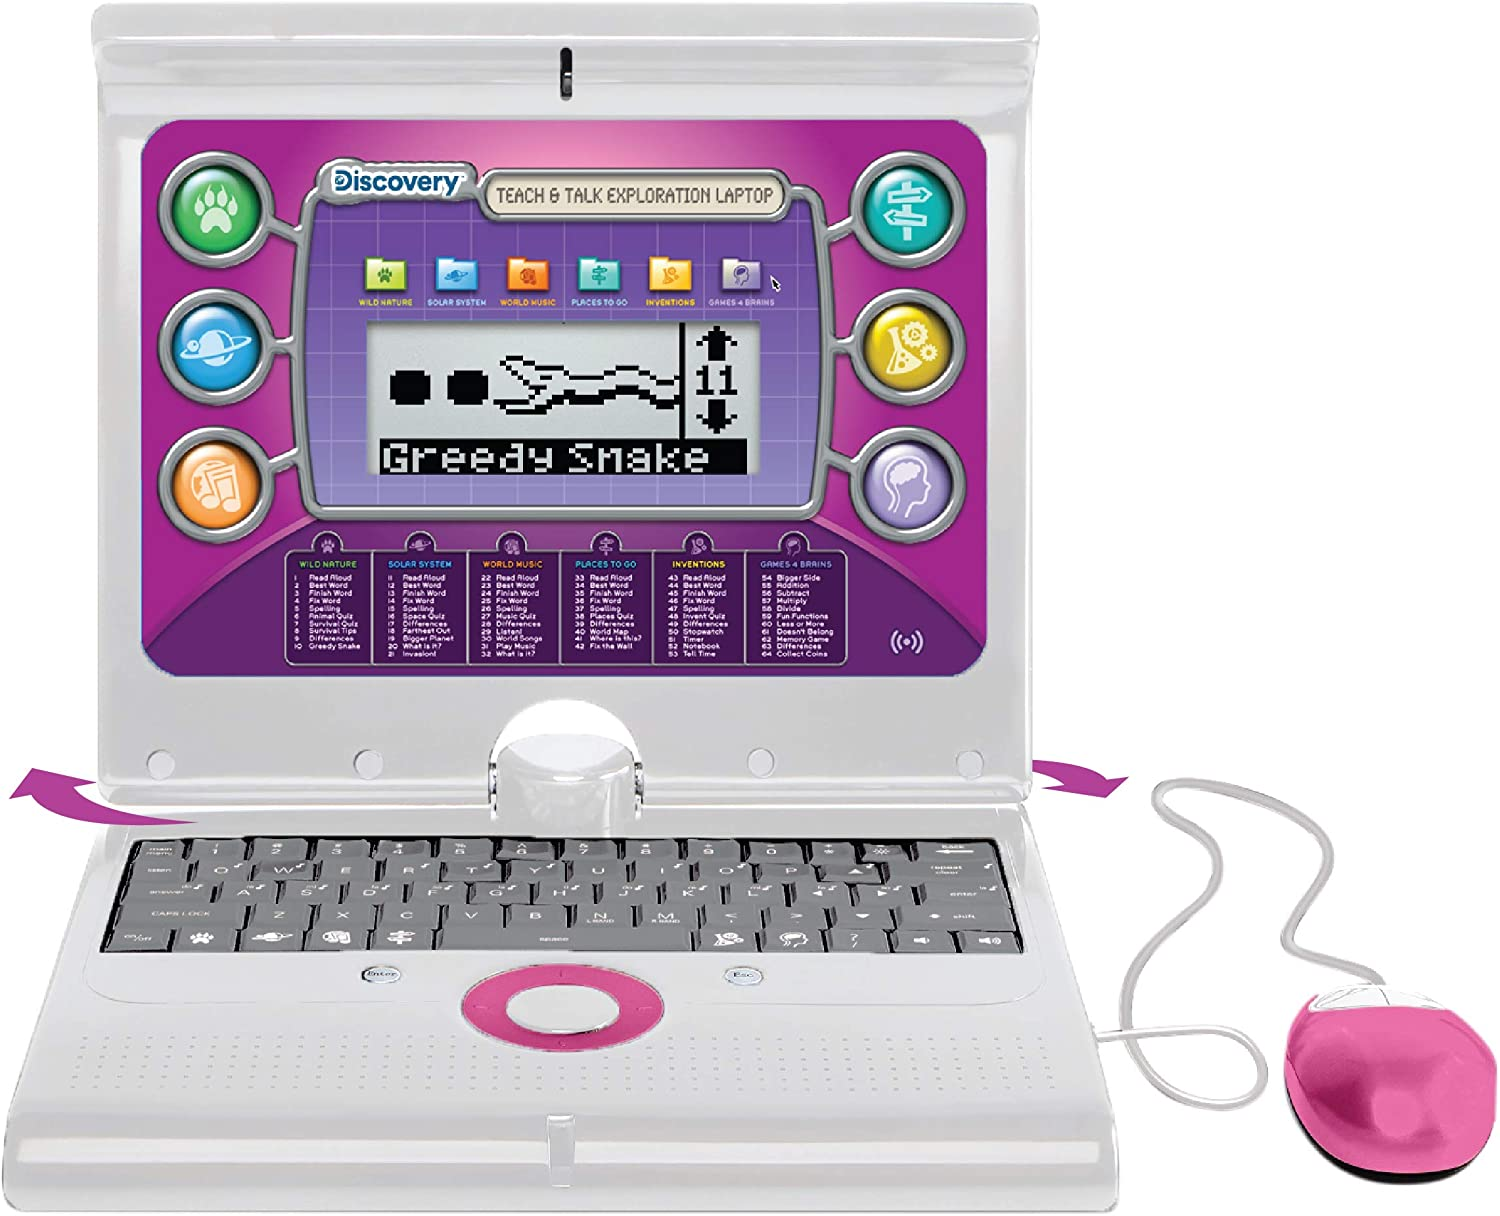 Discovery Kids Teach & Talk Laptop, Children's Educational Interactive Computer, 60 Challenging Games and Activities, Battery Powered and Portable, Pivoting LCD Screen, Keyboard and Mouse Included